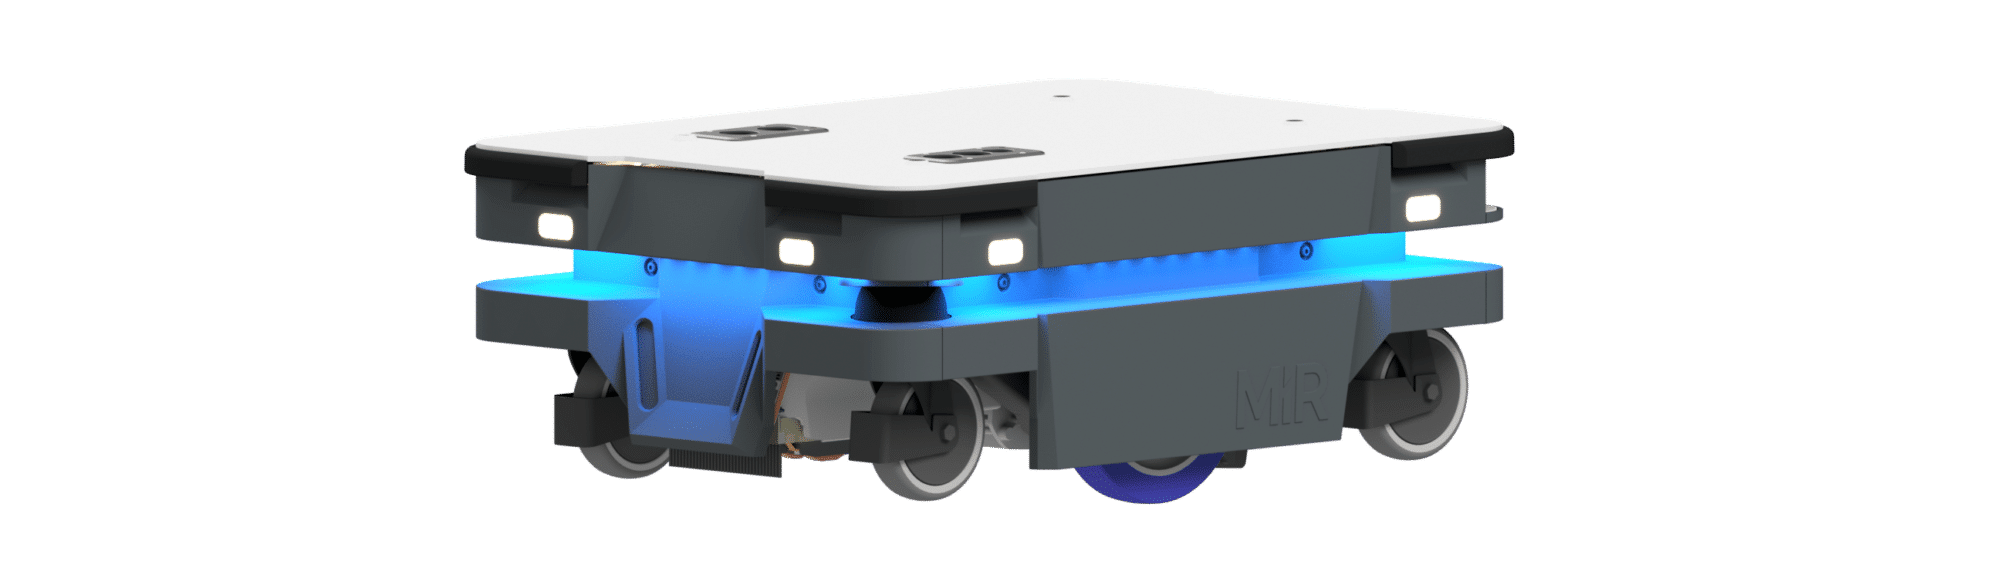 MiR250 from Mobile Industrial Robotics